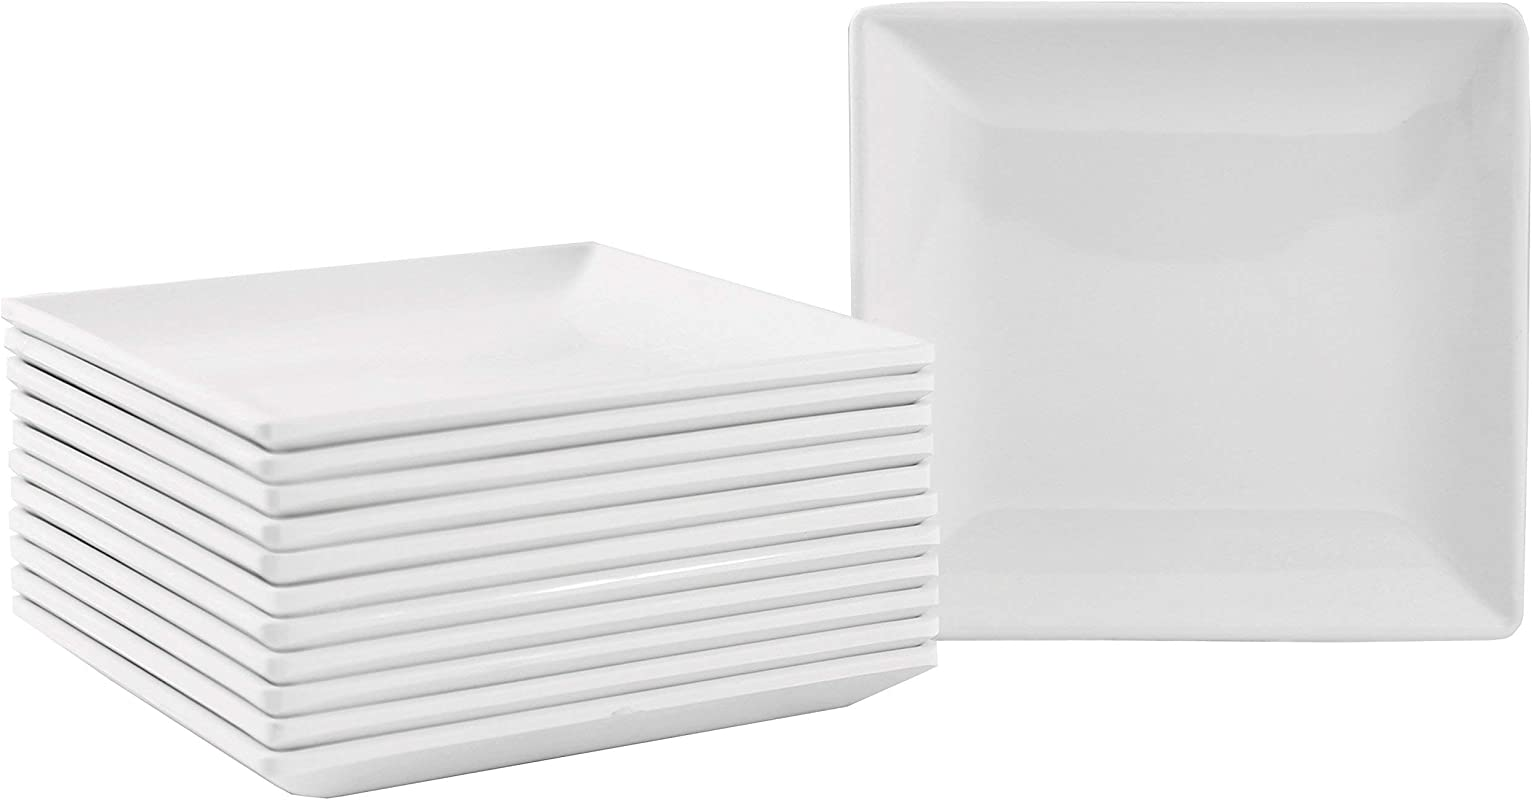 Small Square Melamine Appetizer Plates With Flared Edges And Pan Scraper 4 25 Inches Set Of 12 White